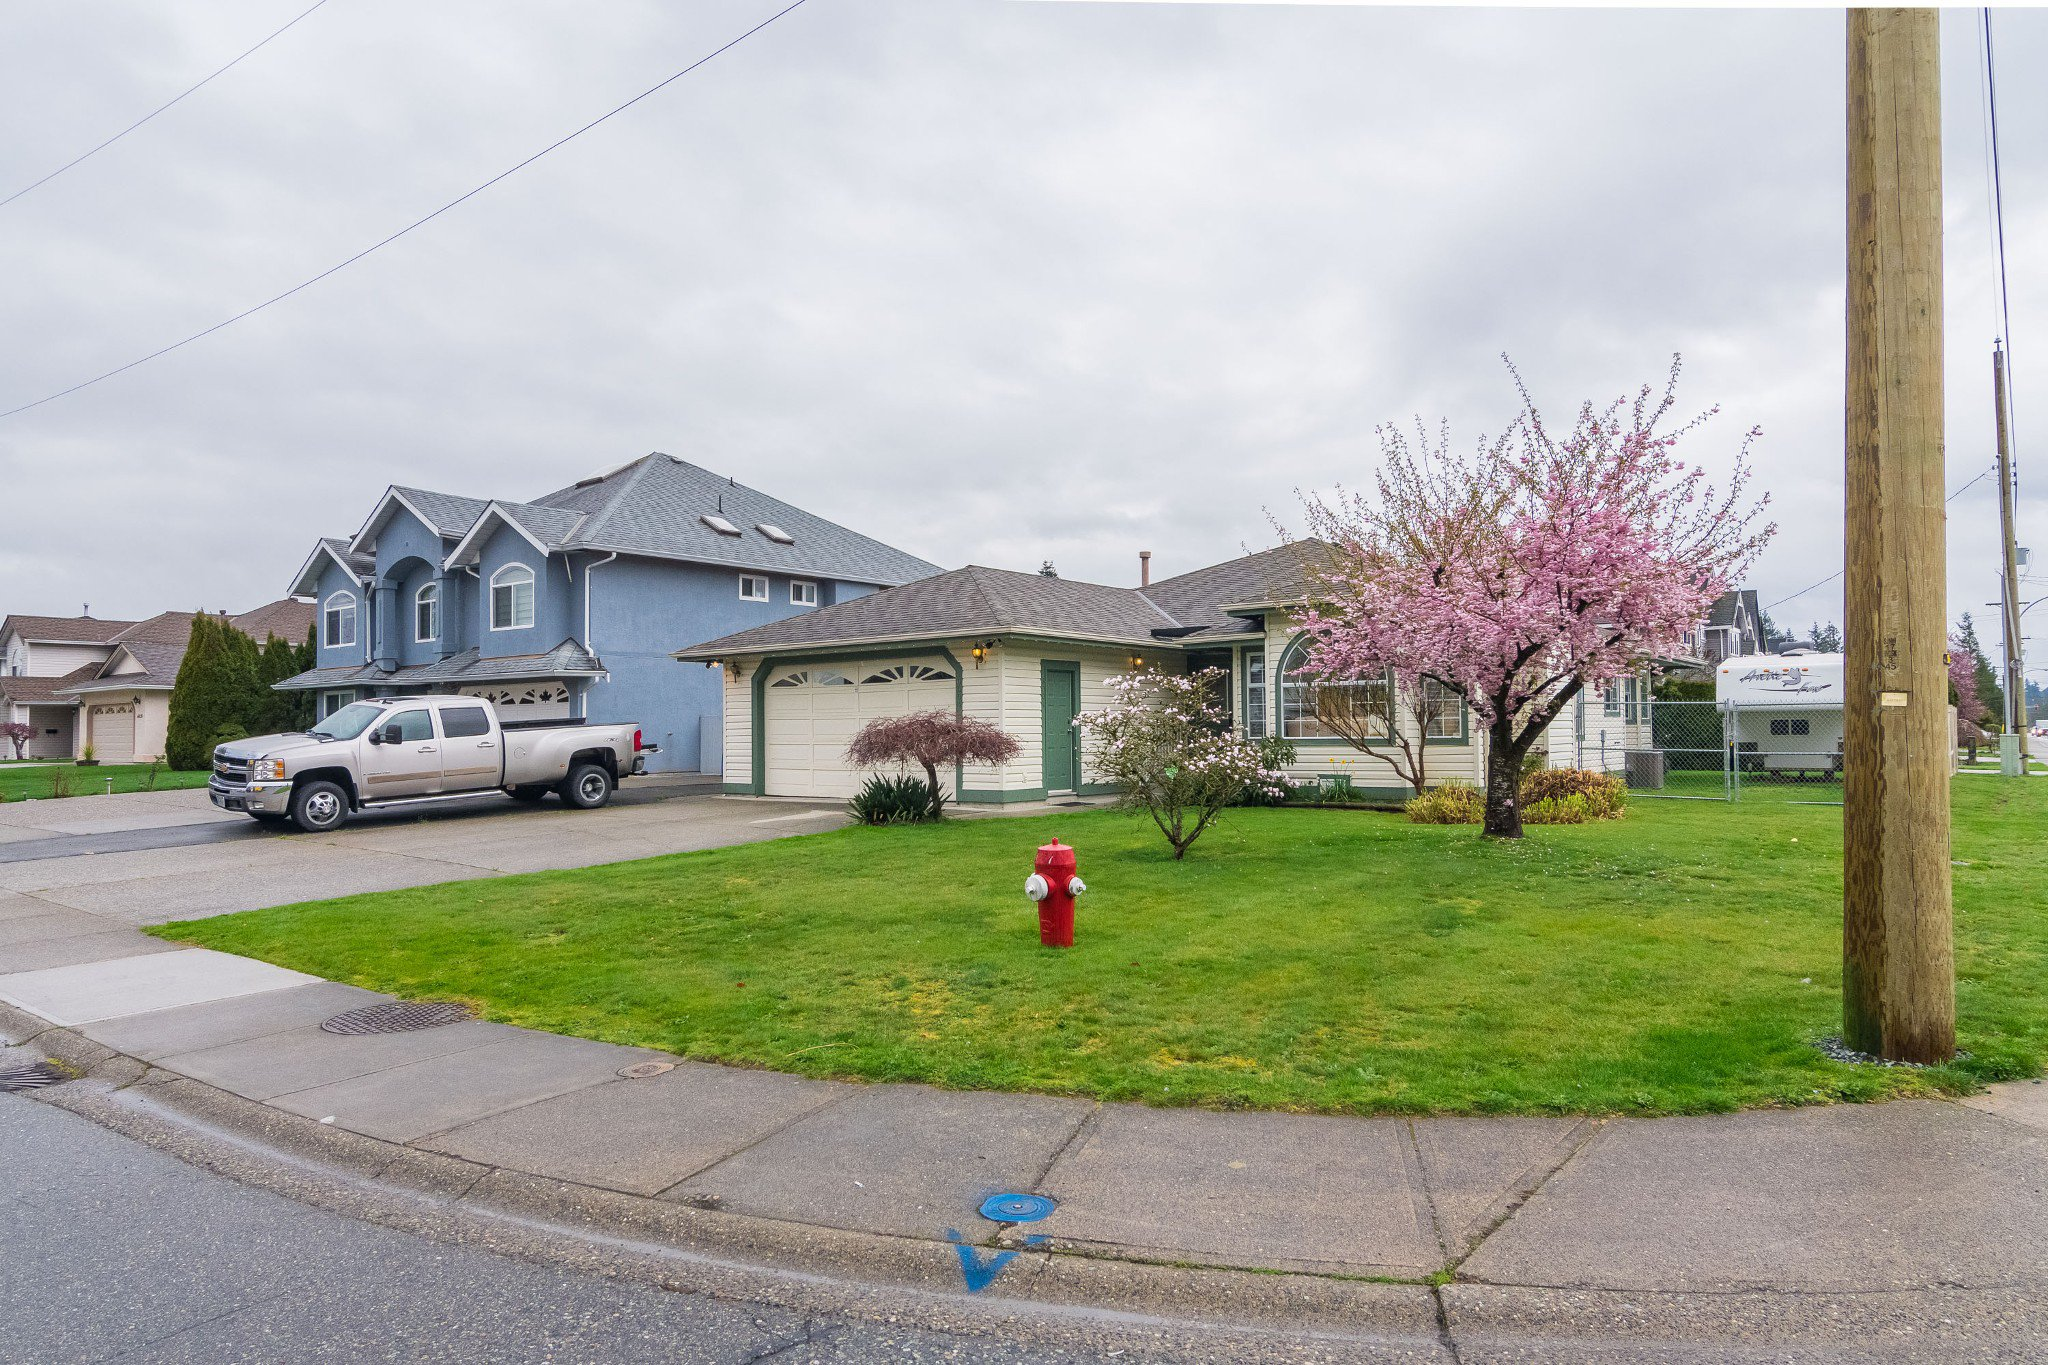 Photo 2: Photos: 6004 170 Street in Surrey: Cloverdale BC House for sale (Cloverdale)  : MLS®# R2355466